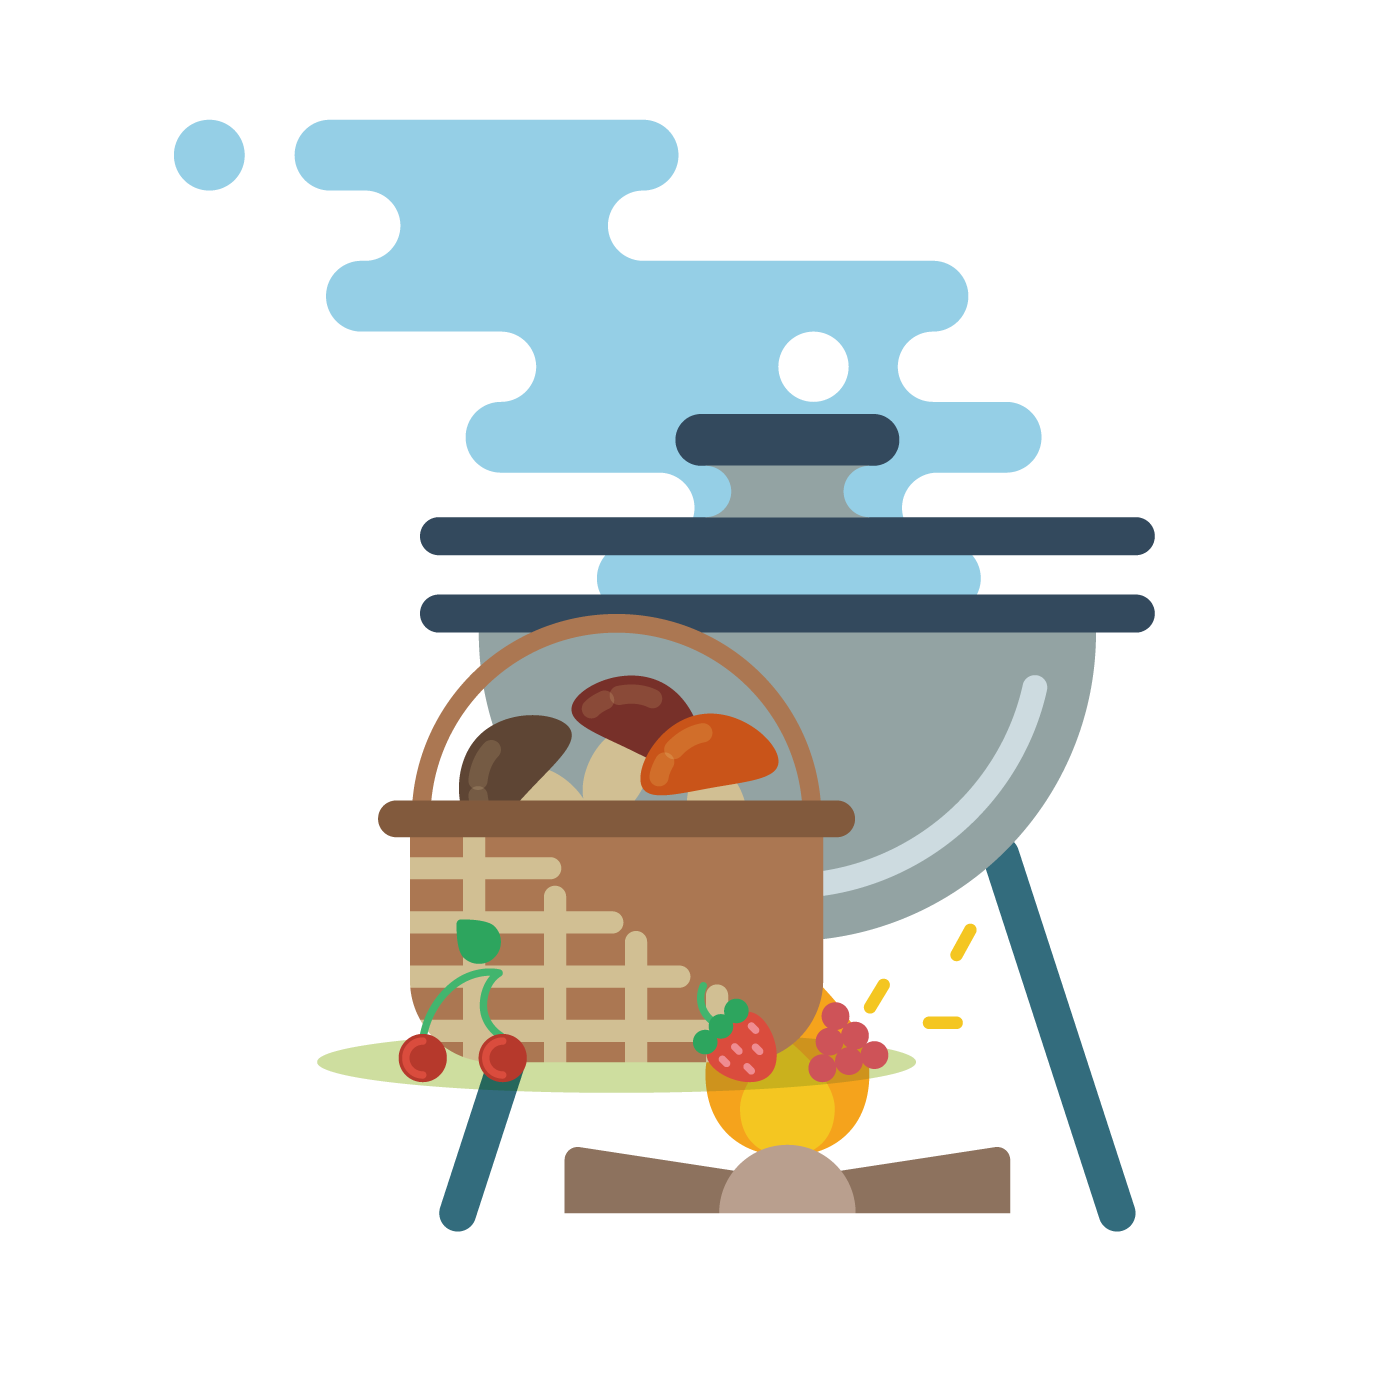 vector freeuse download Grilling clipart camp food. Camping barbecue grill clip